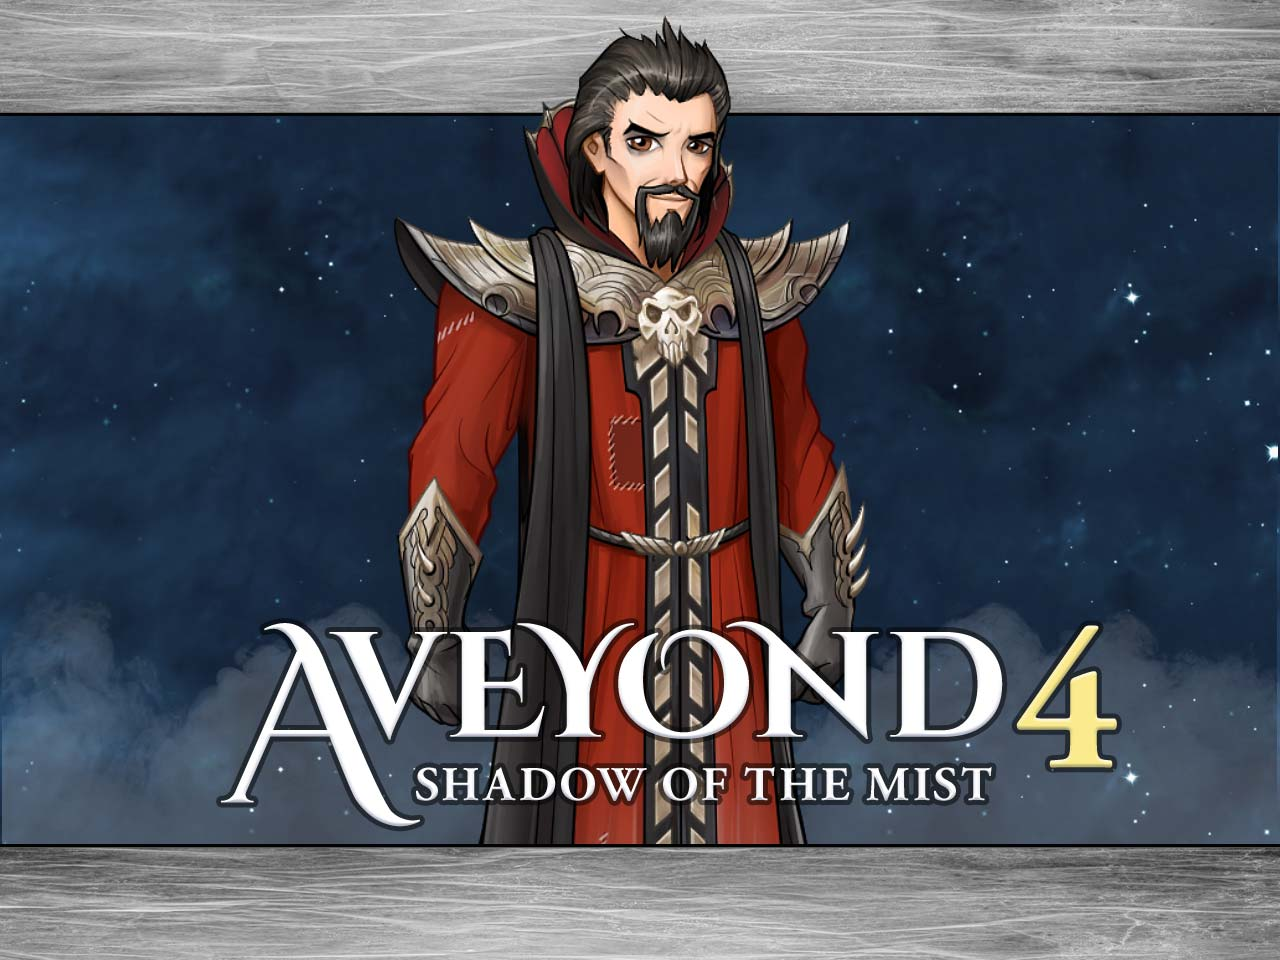 Aveyond-Cover-Large.jpg